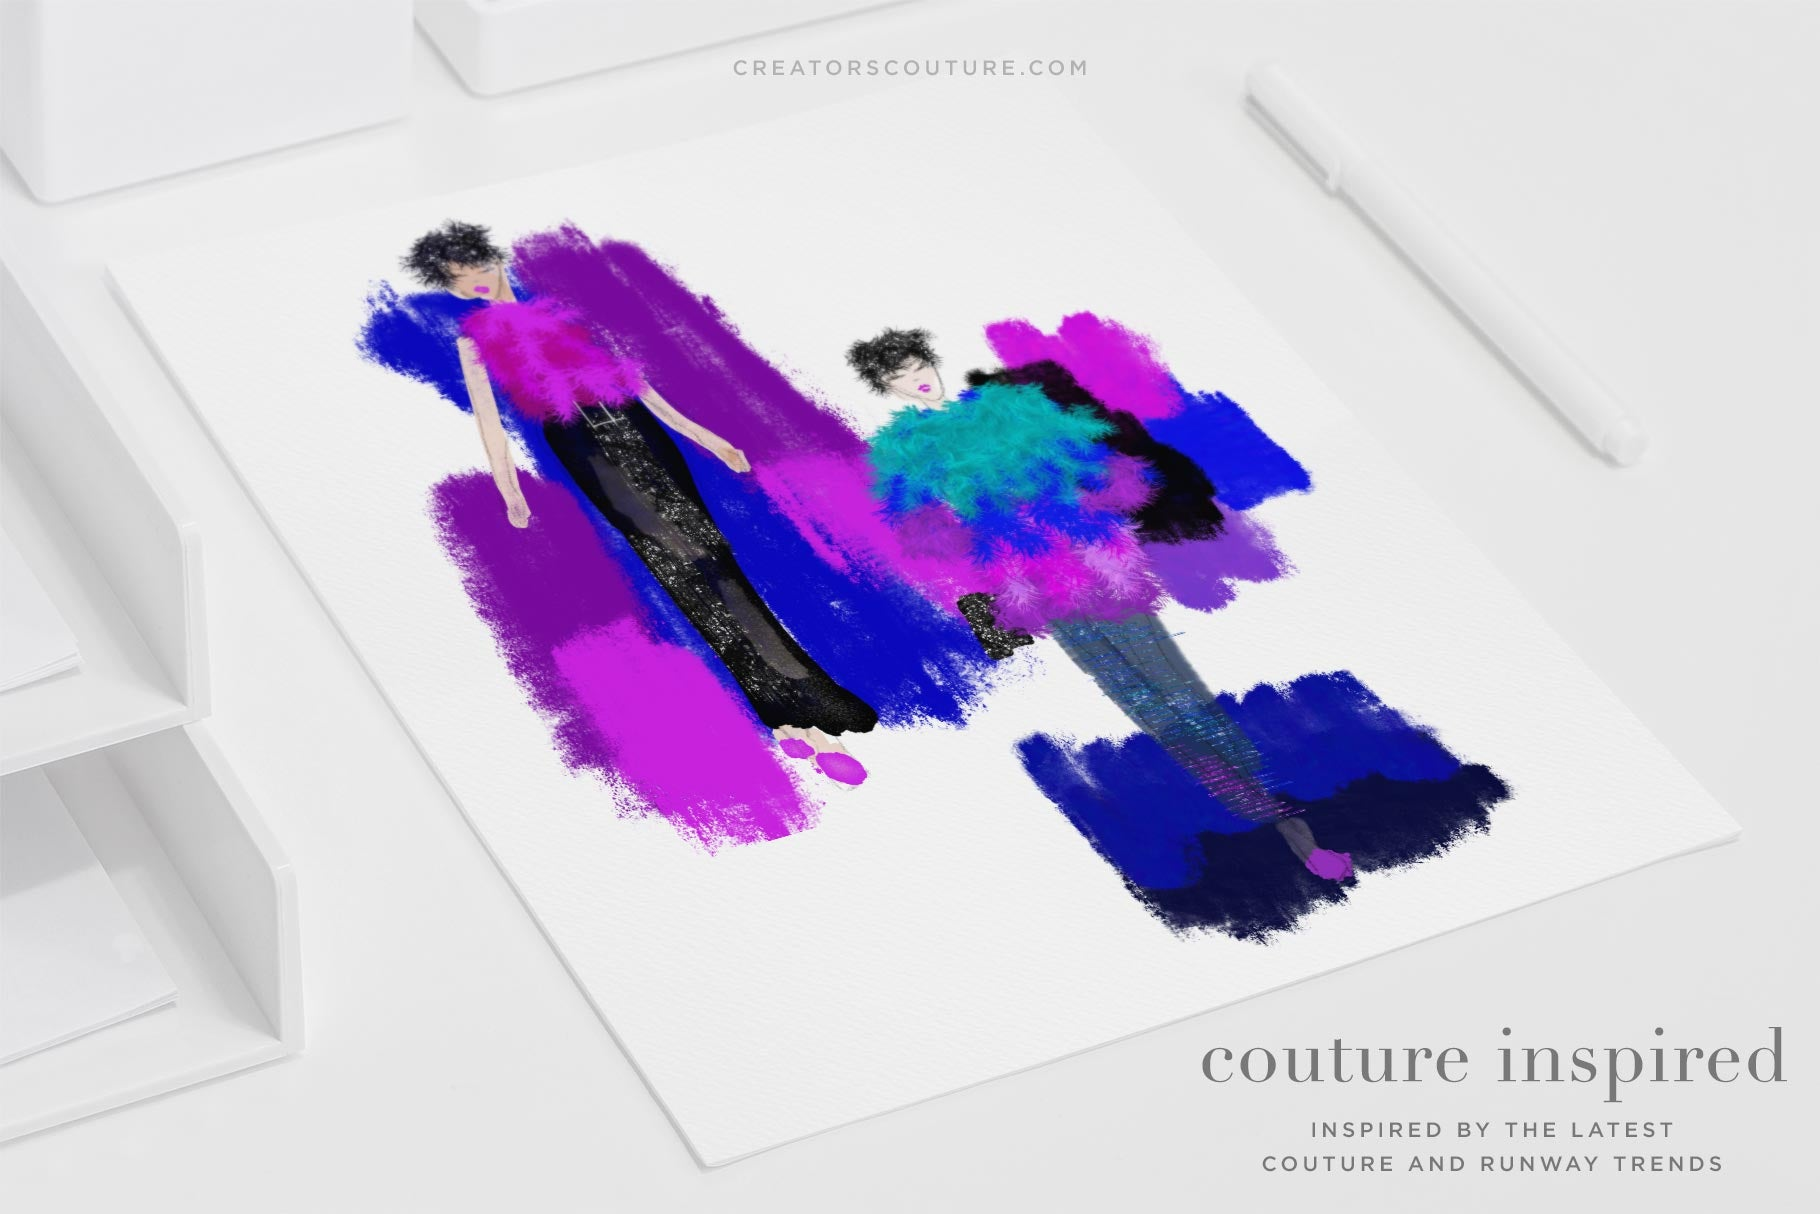 Glam Pop Couture Inspired Glittery Backgrounds - Creators Couture